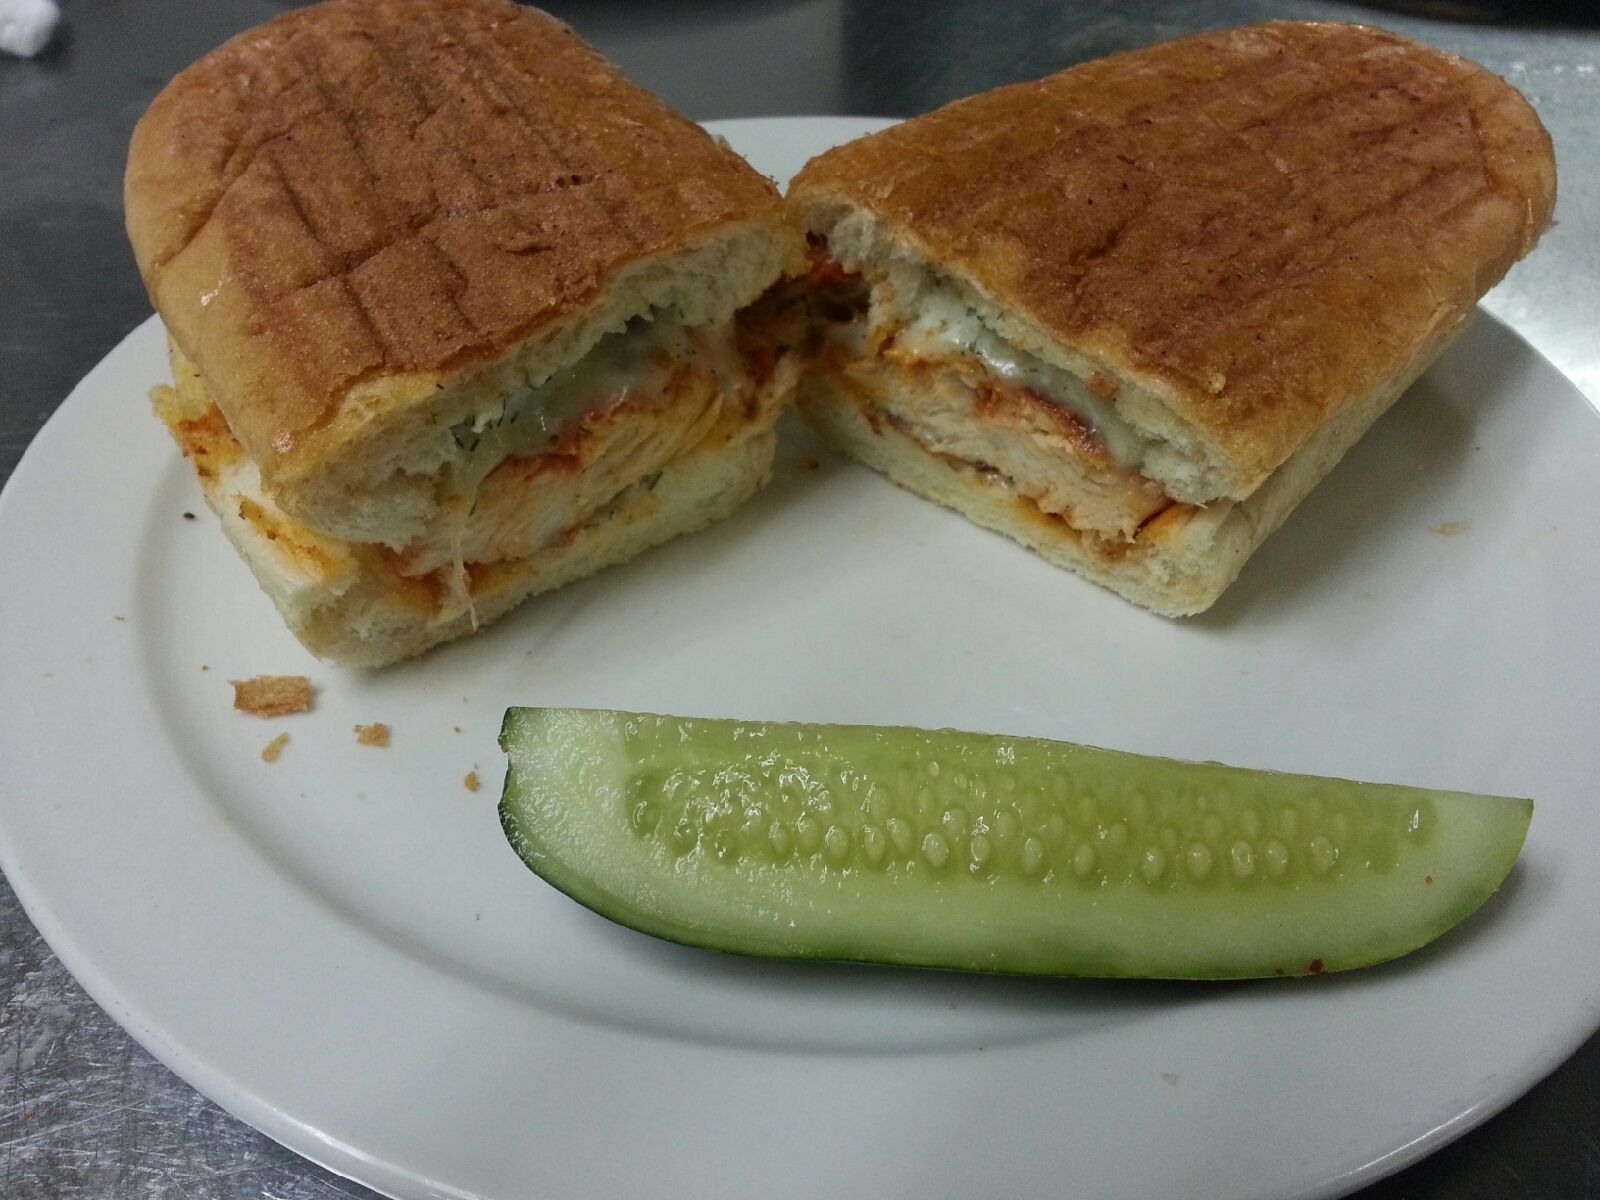 #19 Chicken Breast -N- Cheese Image